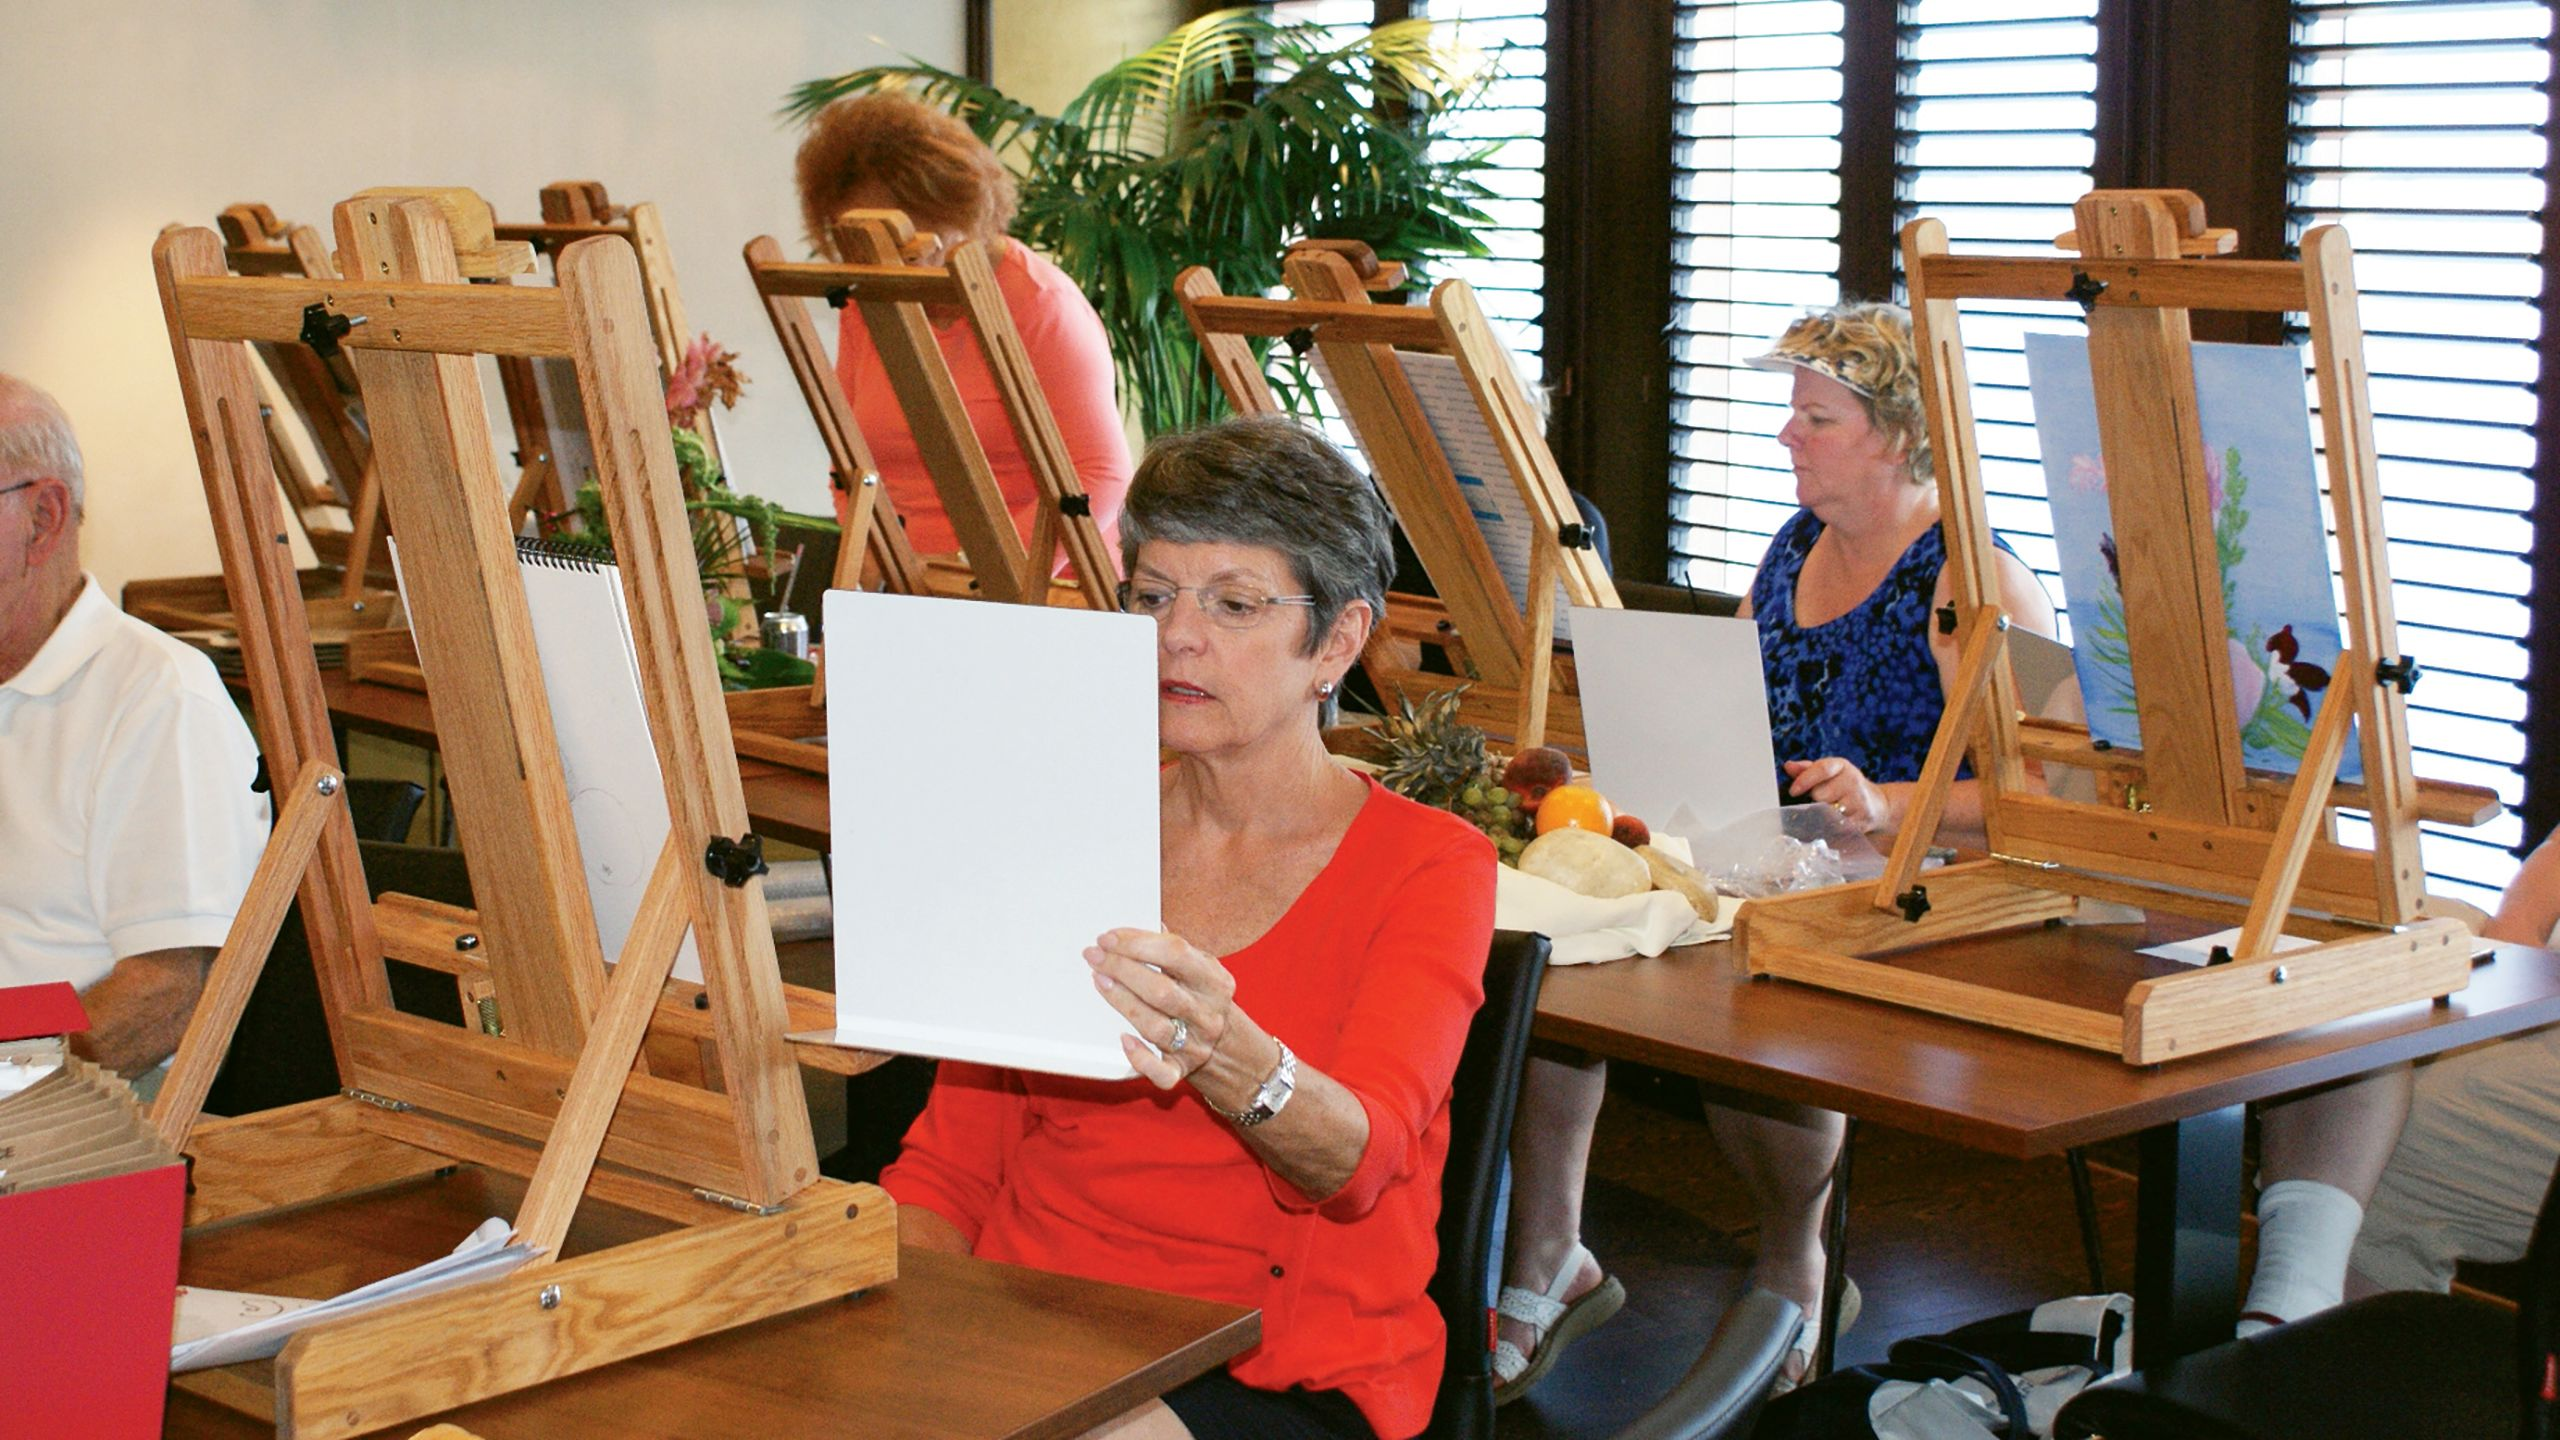 The Artist Lofts on  Oceania Cruises provide a workshop for passengers and instruction from an artist-in-residence.